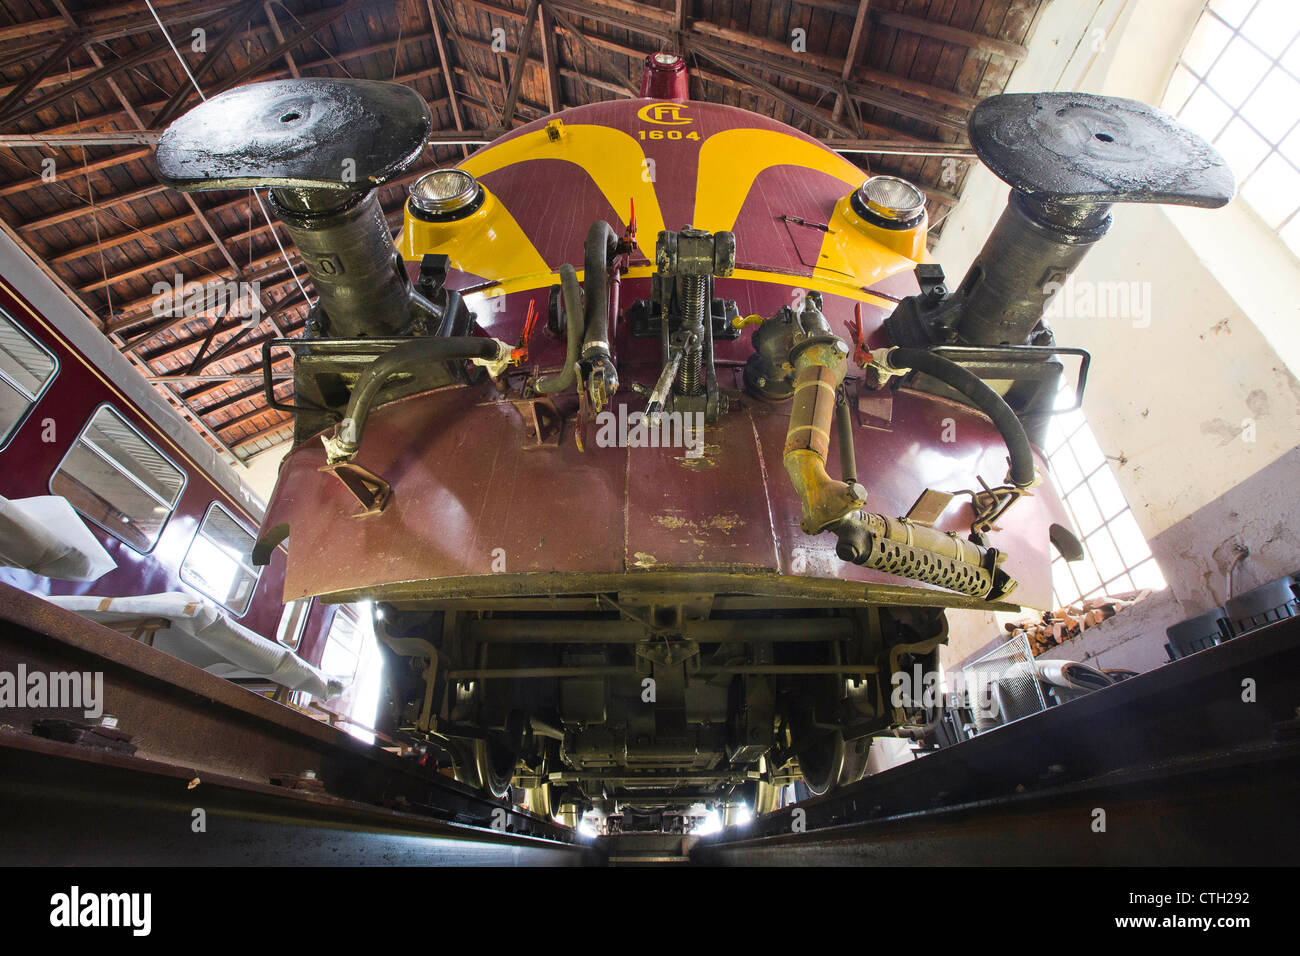 Railway Repair Shop of the 1604 Classics club.  View from below of a Diesel Locomotive 1604. - Stock Image